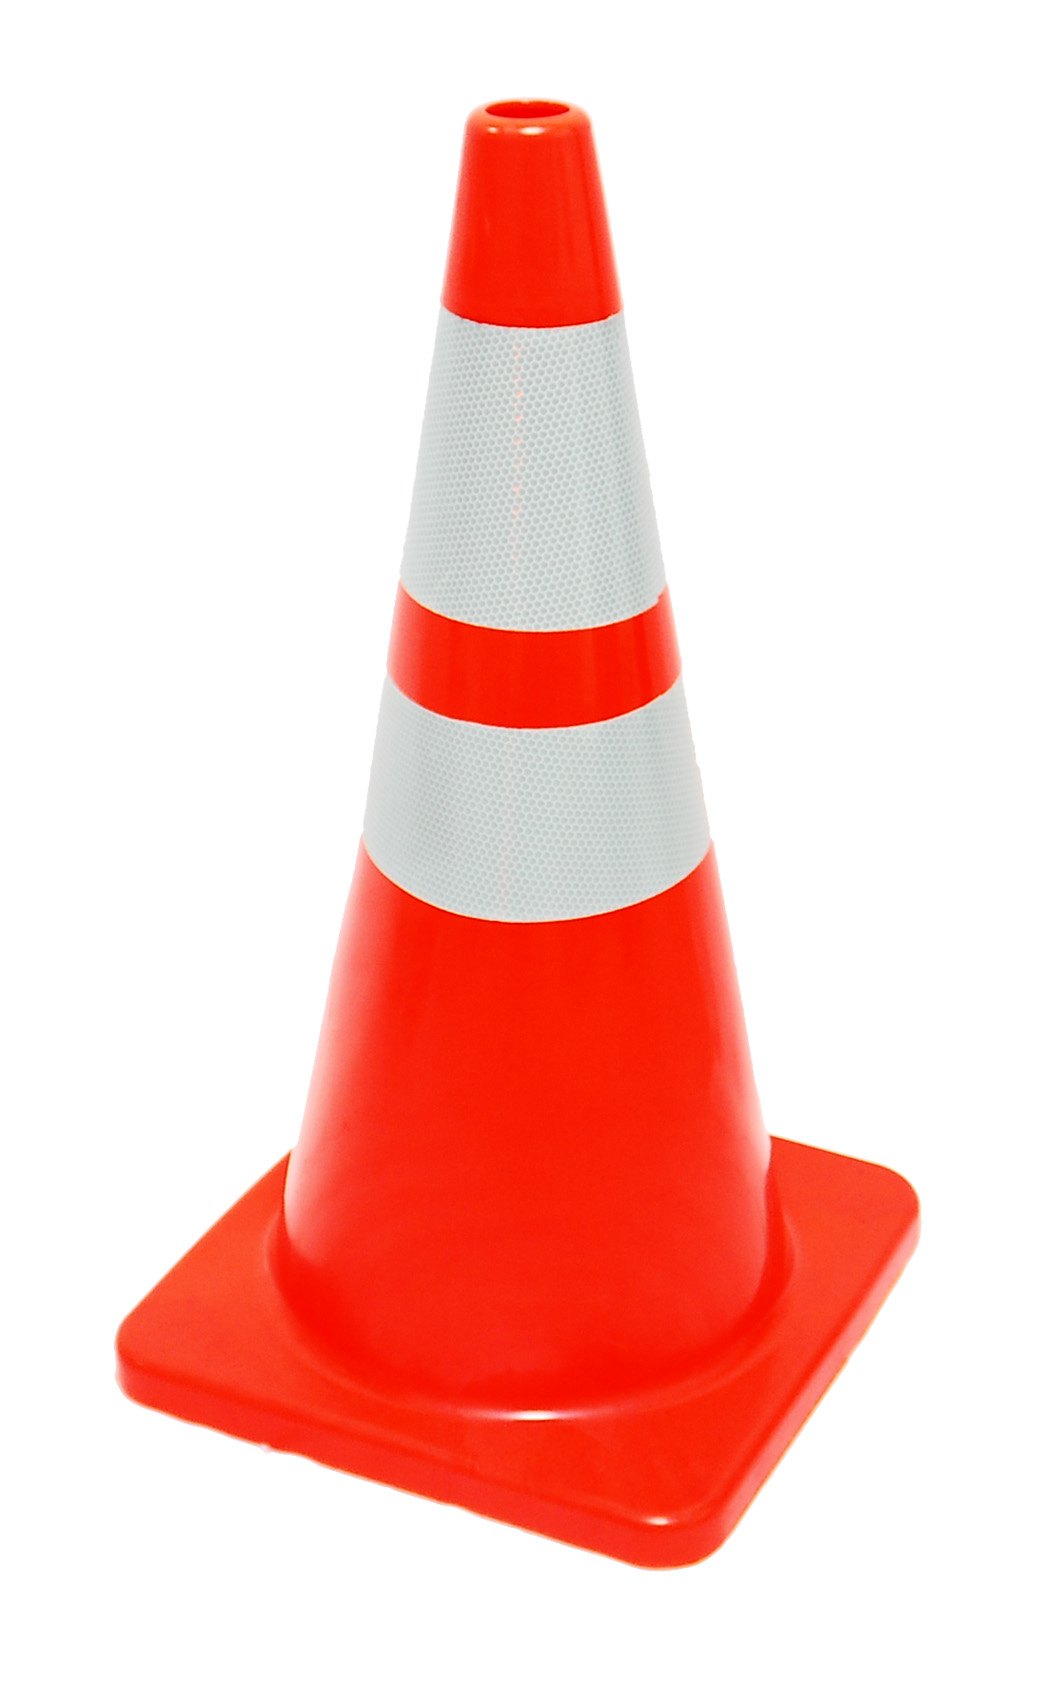 Orange Traffic Cone Clipart - Clipart Suggest